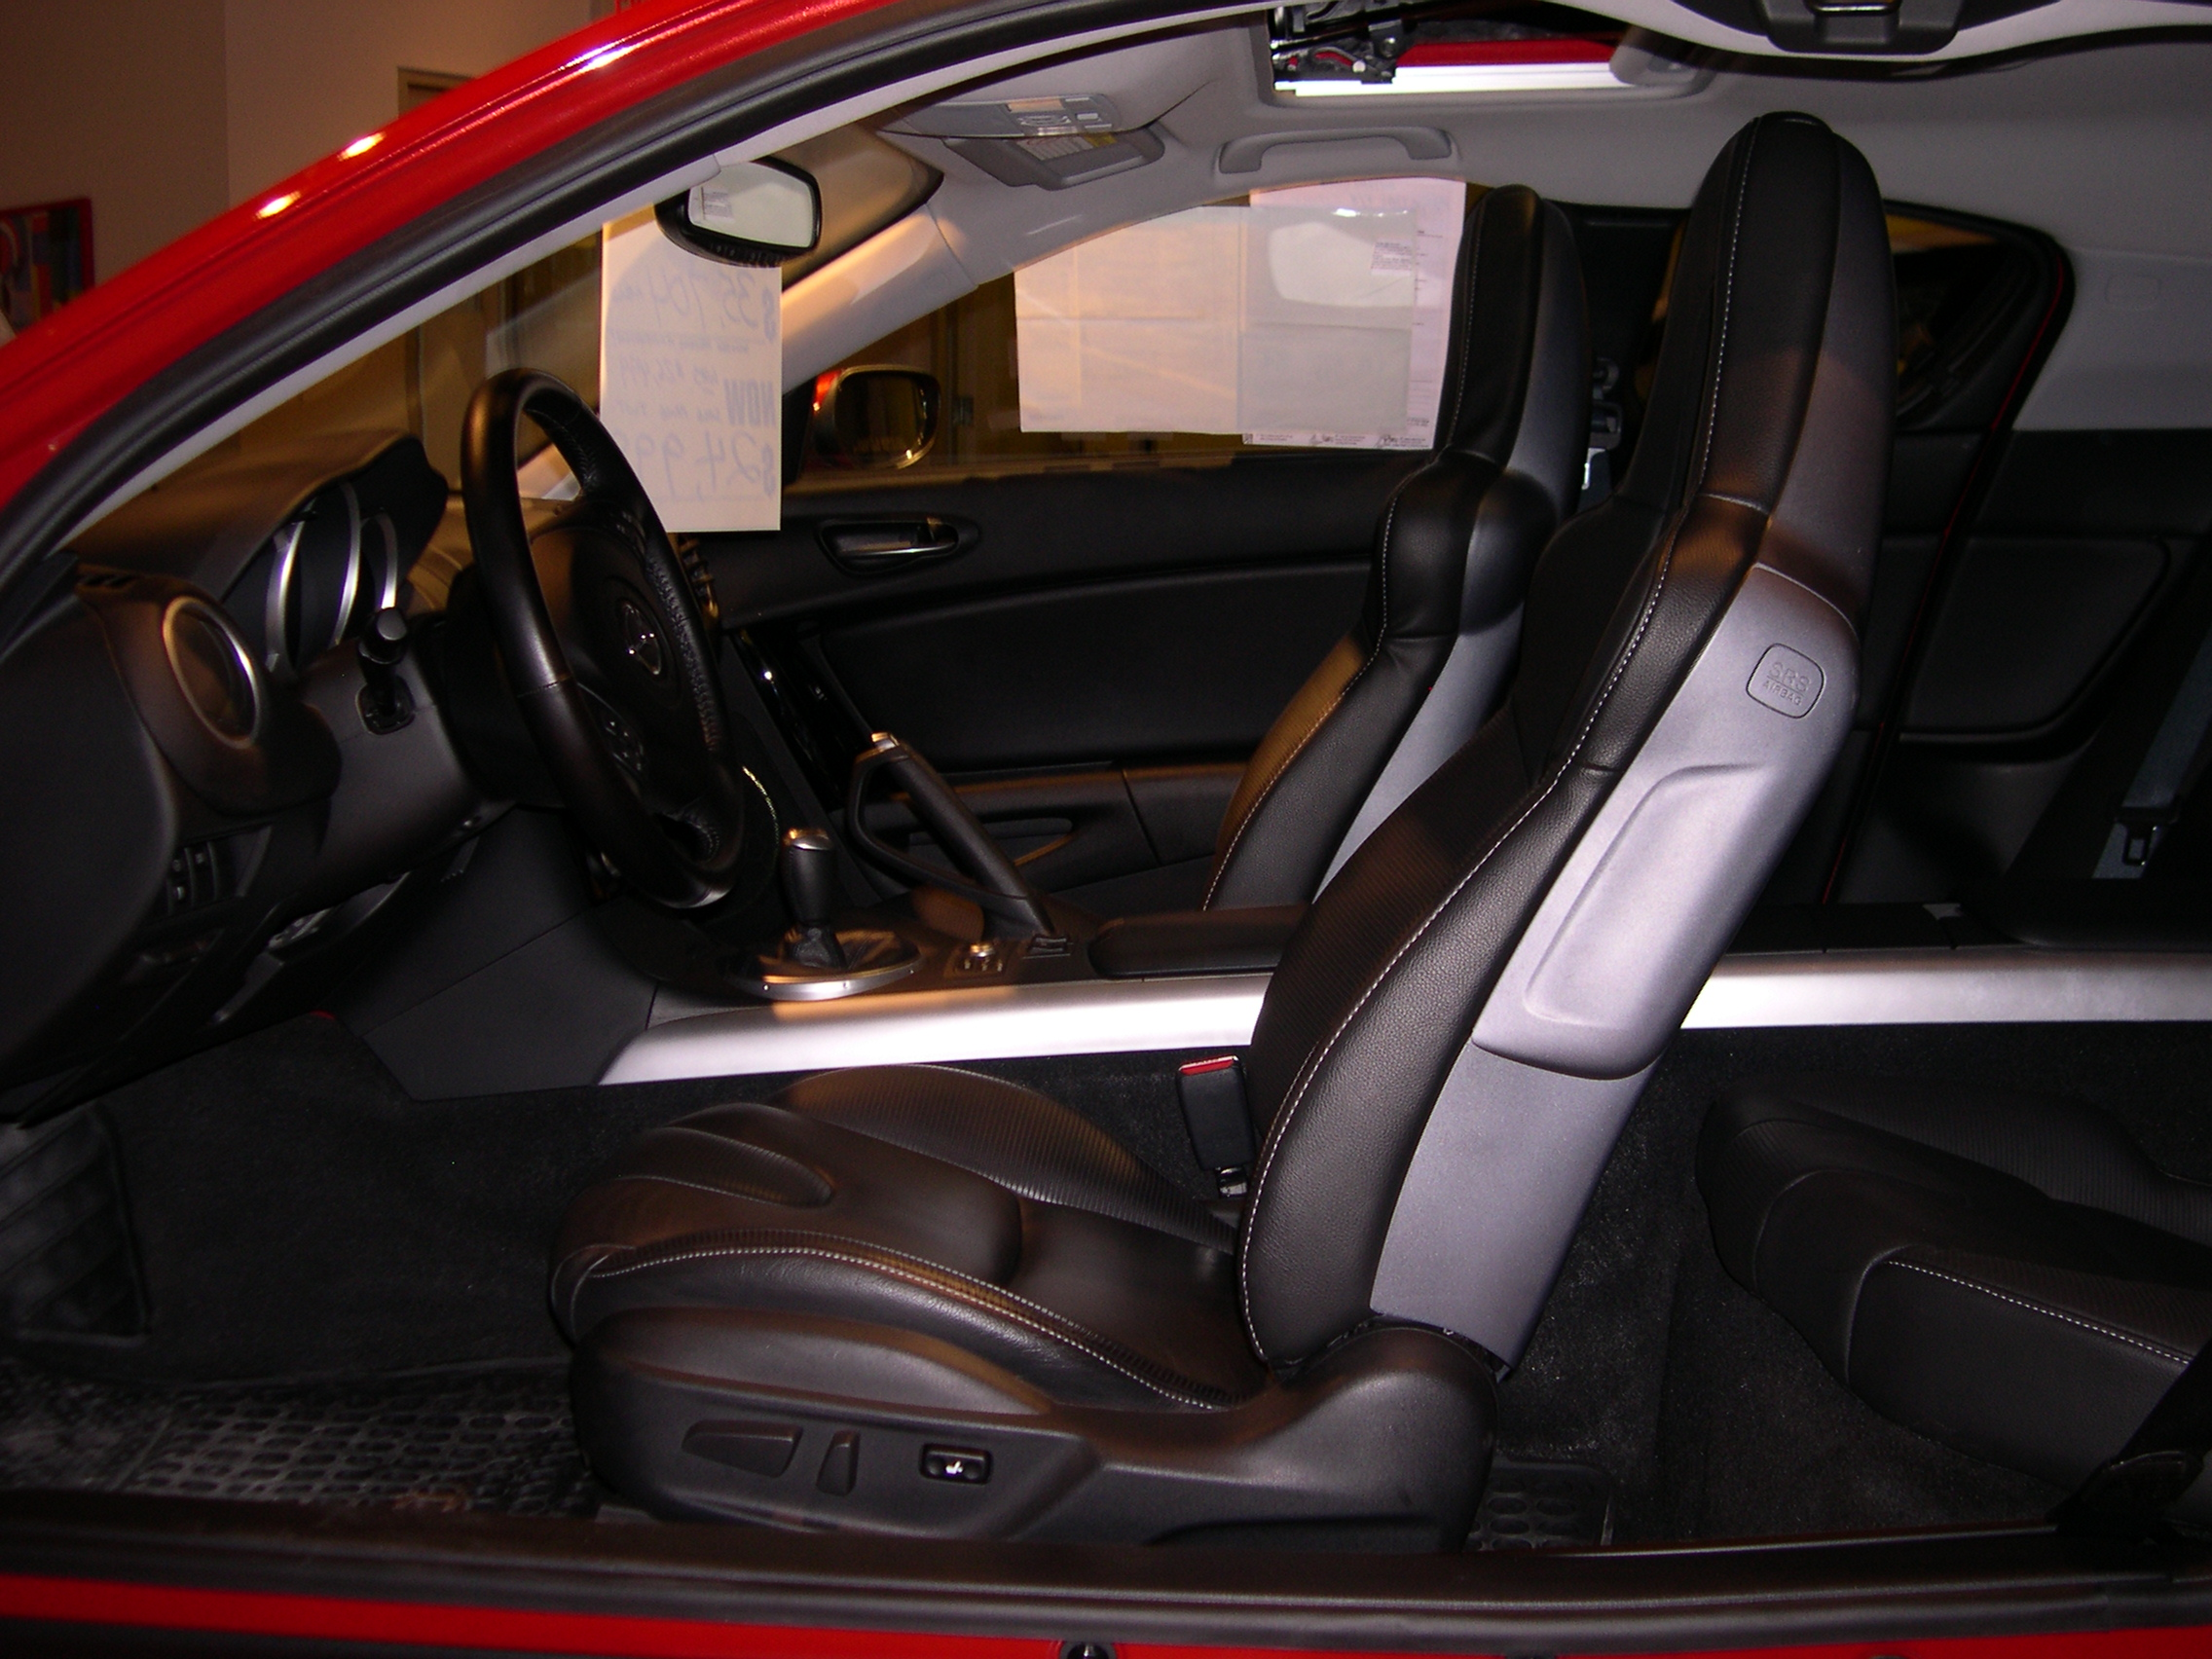 File:2005 Mazda RX-8 interior.JPG - Wikimedia Commons